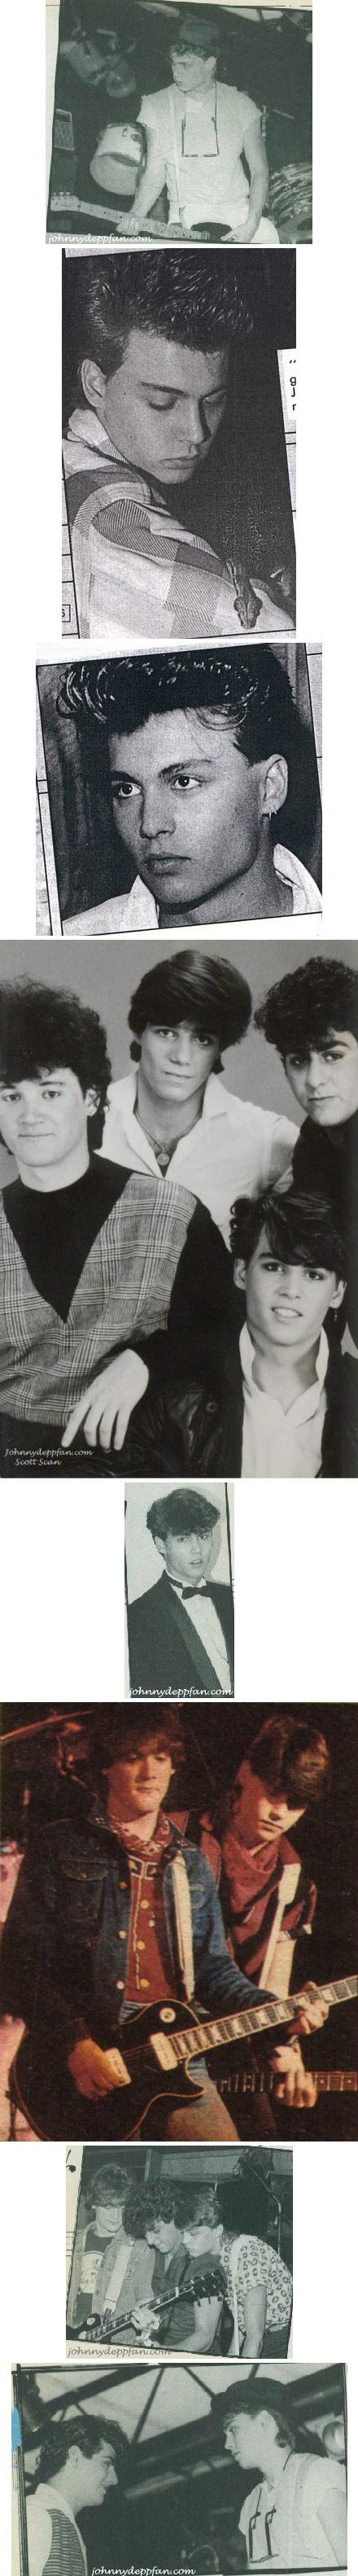 Johnny Depp and The Kids, that's a band, but they are just kids in some of the pics are of The Kids as kids. :)